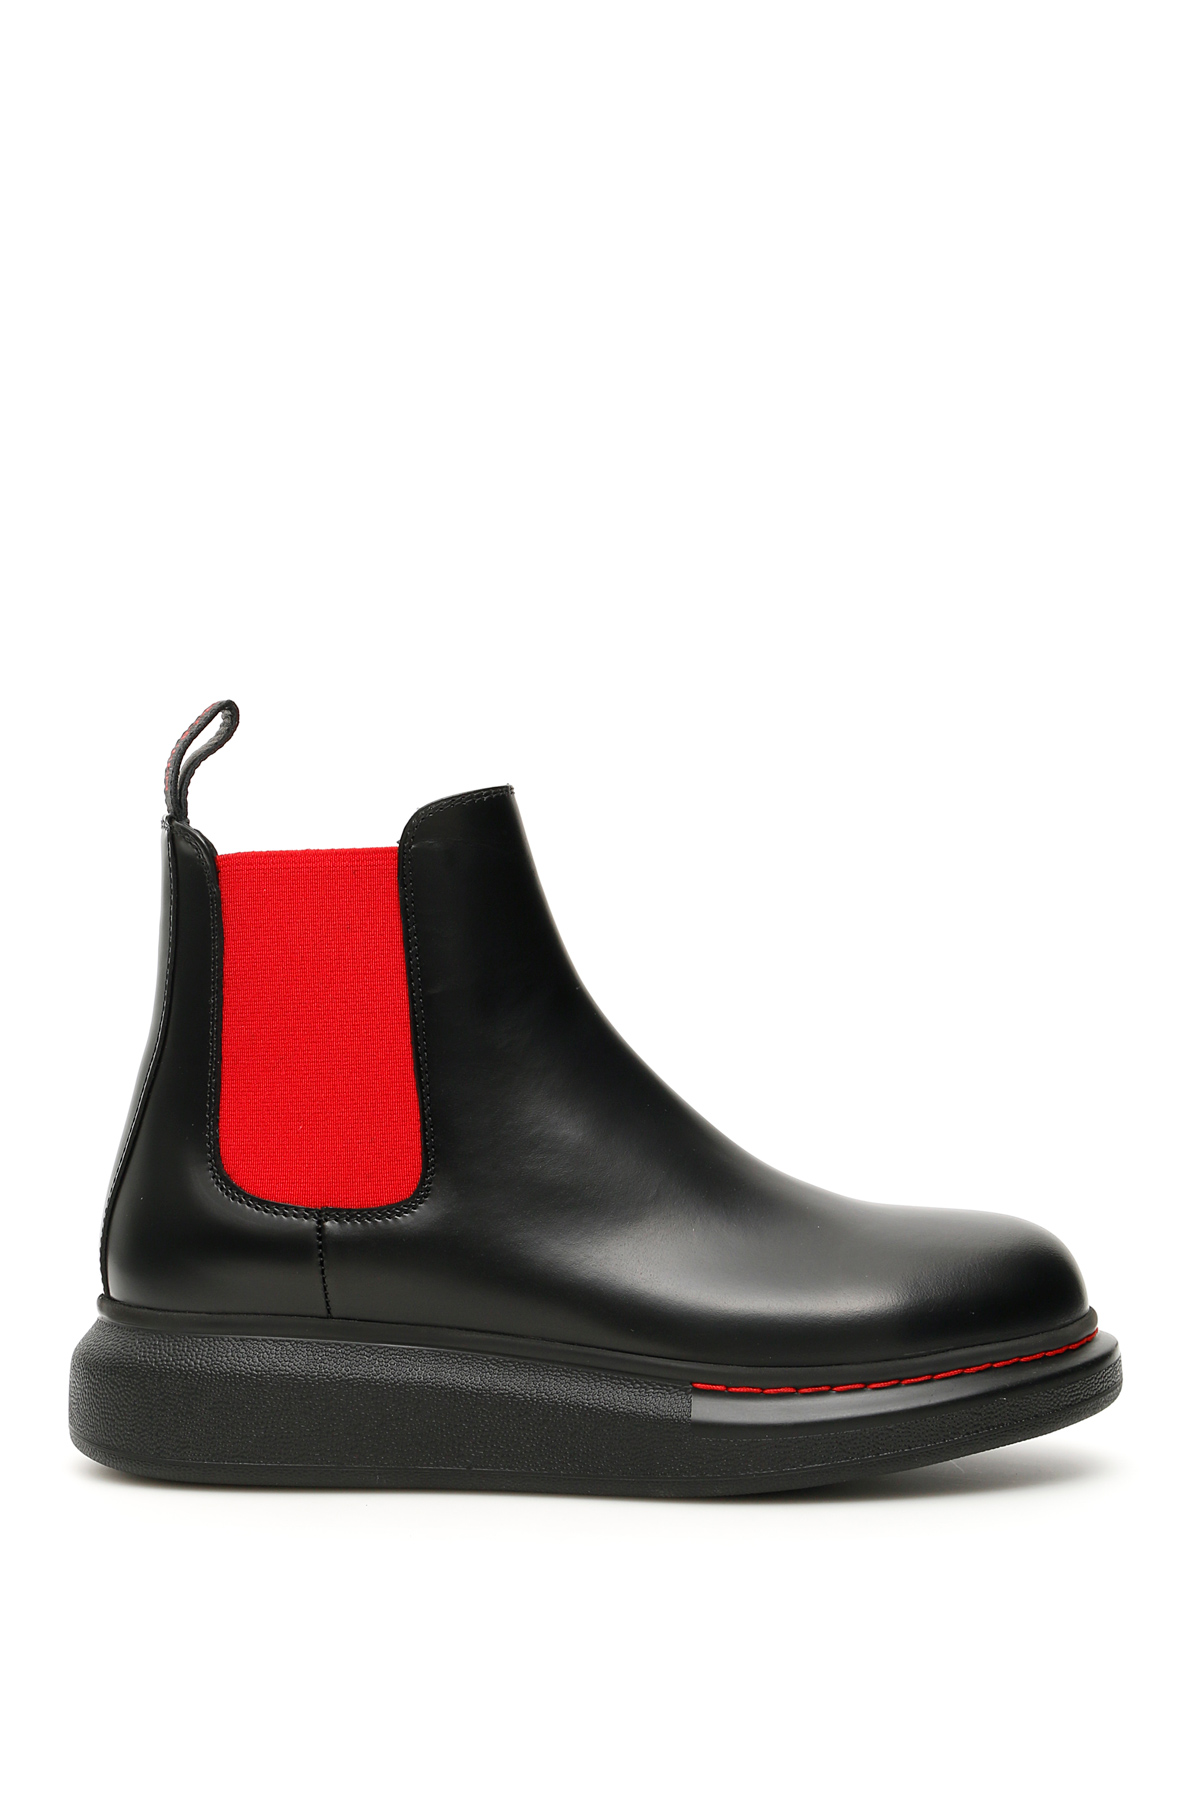 ALEXANDER MCQUEEN CHELSEA HYBRID BOOTS 38 Black, Red Leather